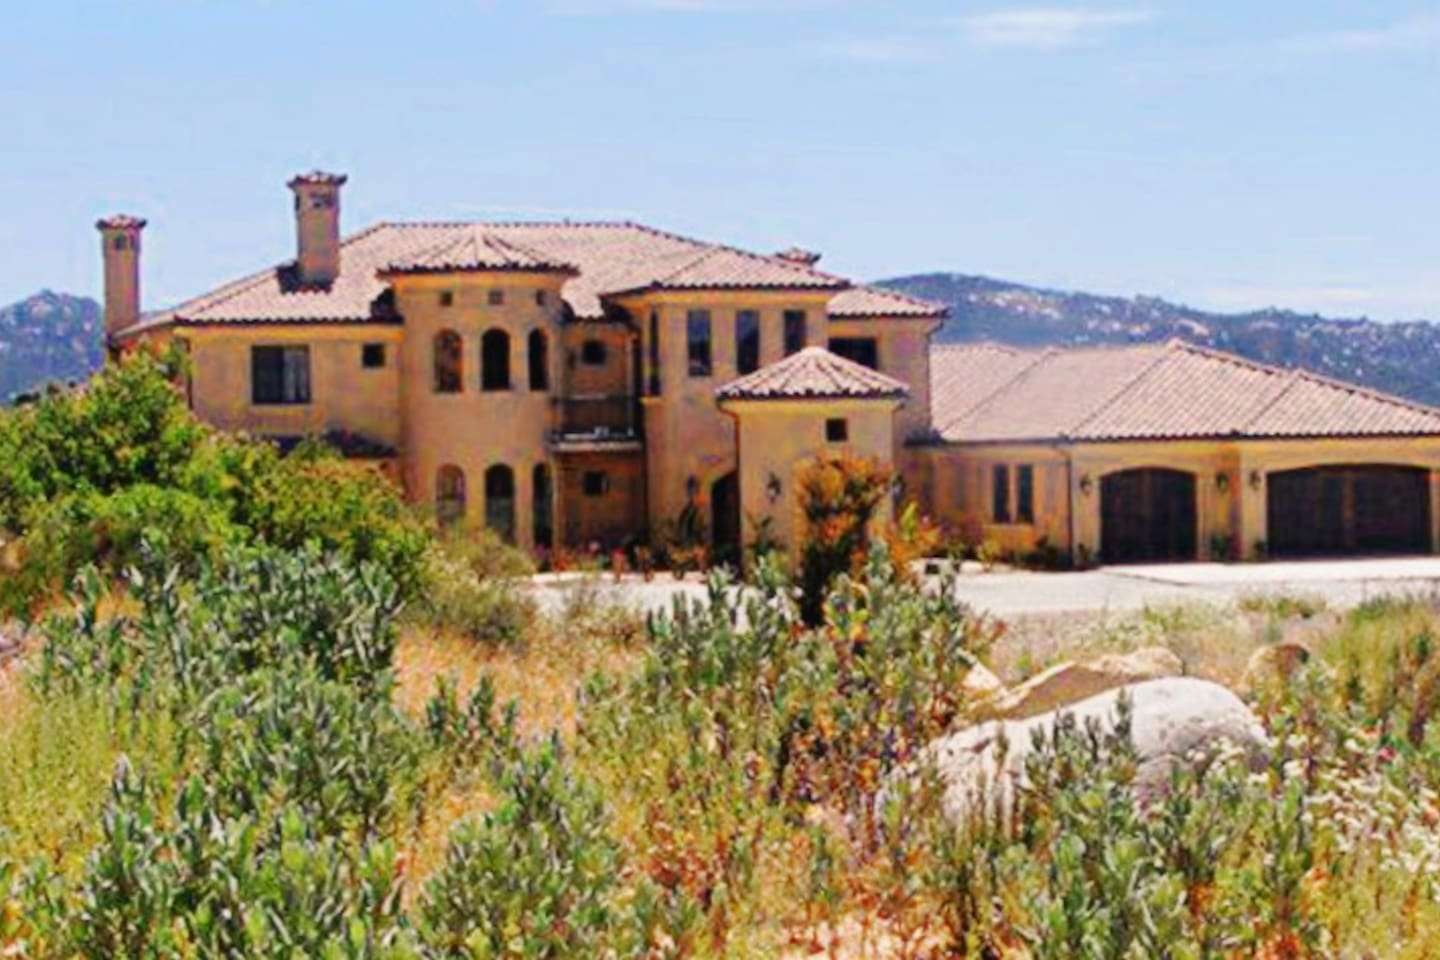 Beautiful Mansion in the Murrieta Hills...  Local hiking trails, and breathtaking views await you on the Santa Rosa Plateau..